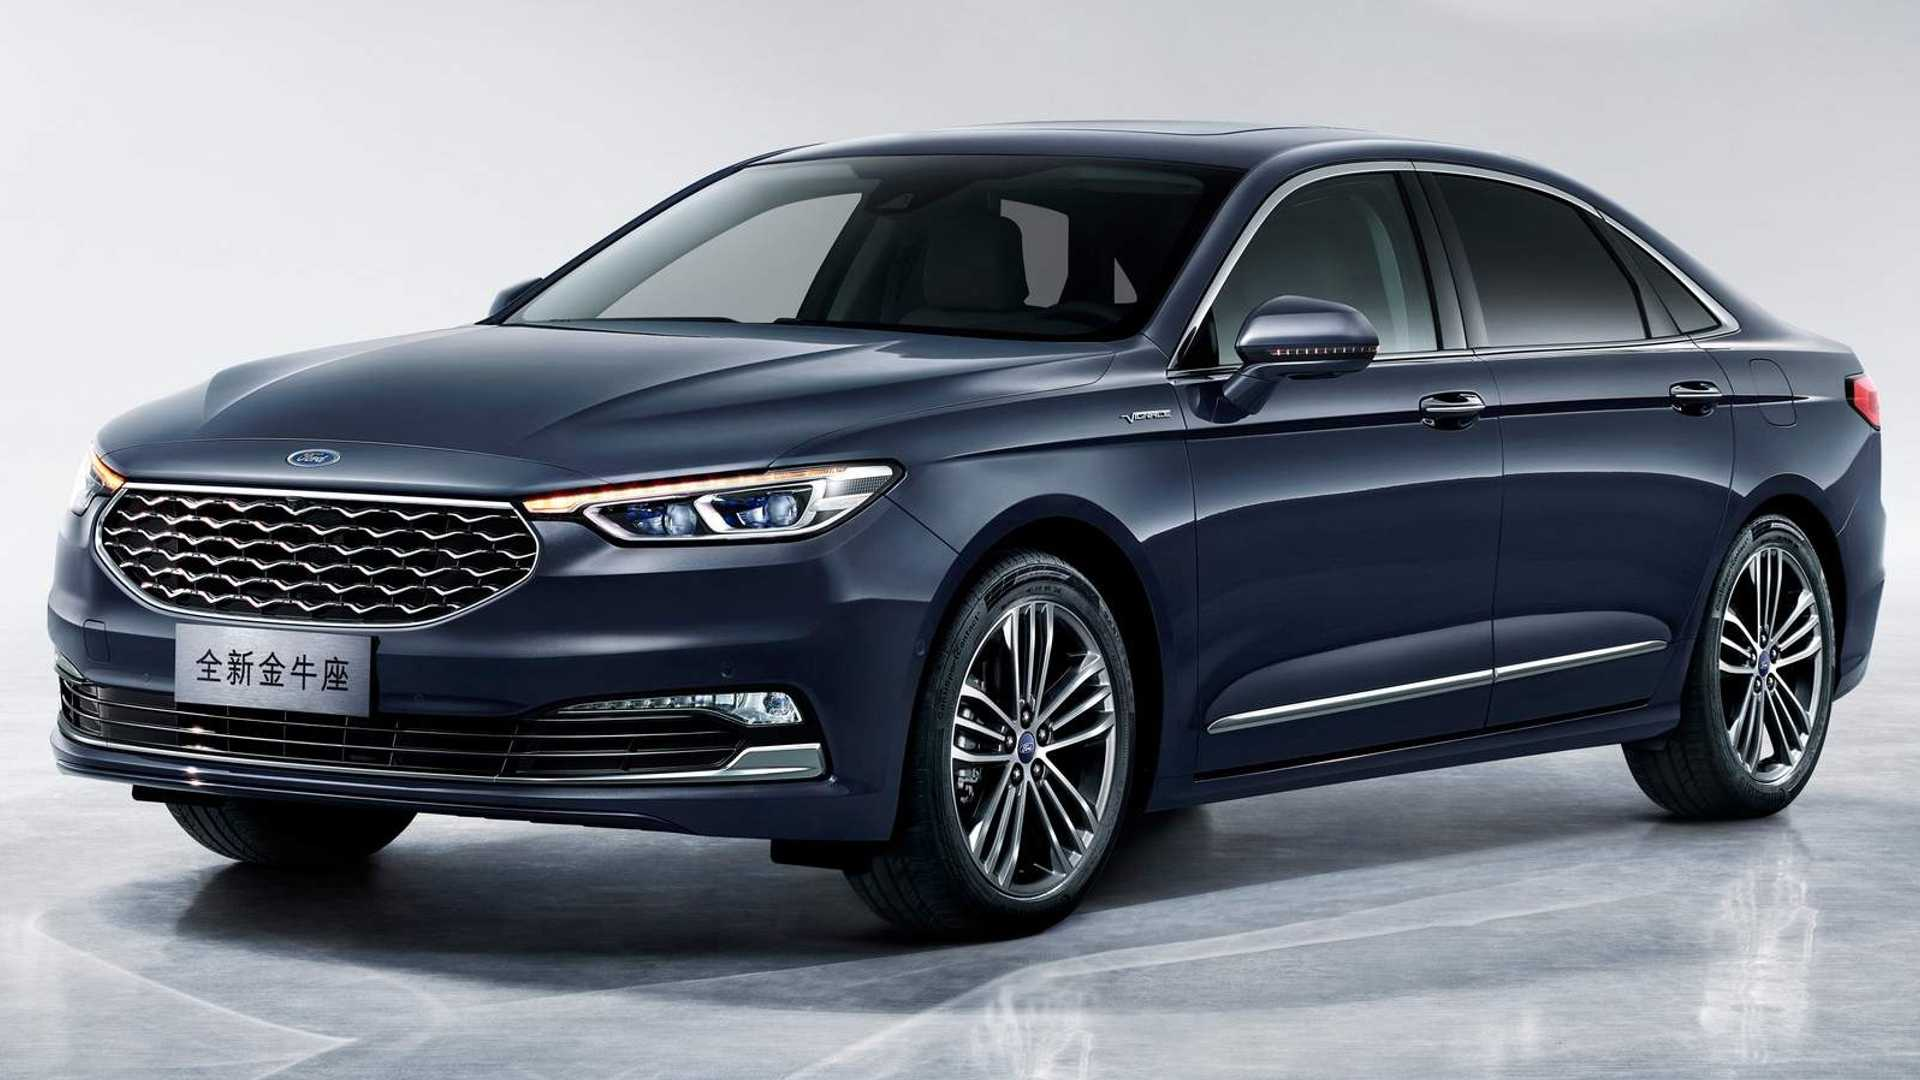 70 A Ford Taurus 2020 Rumors